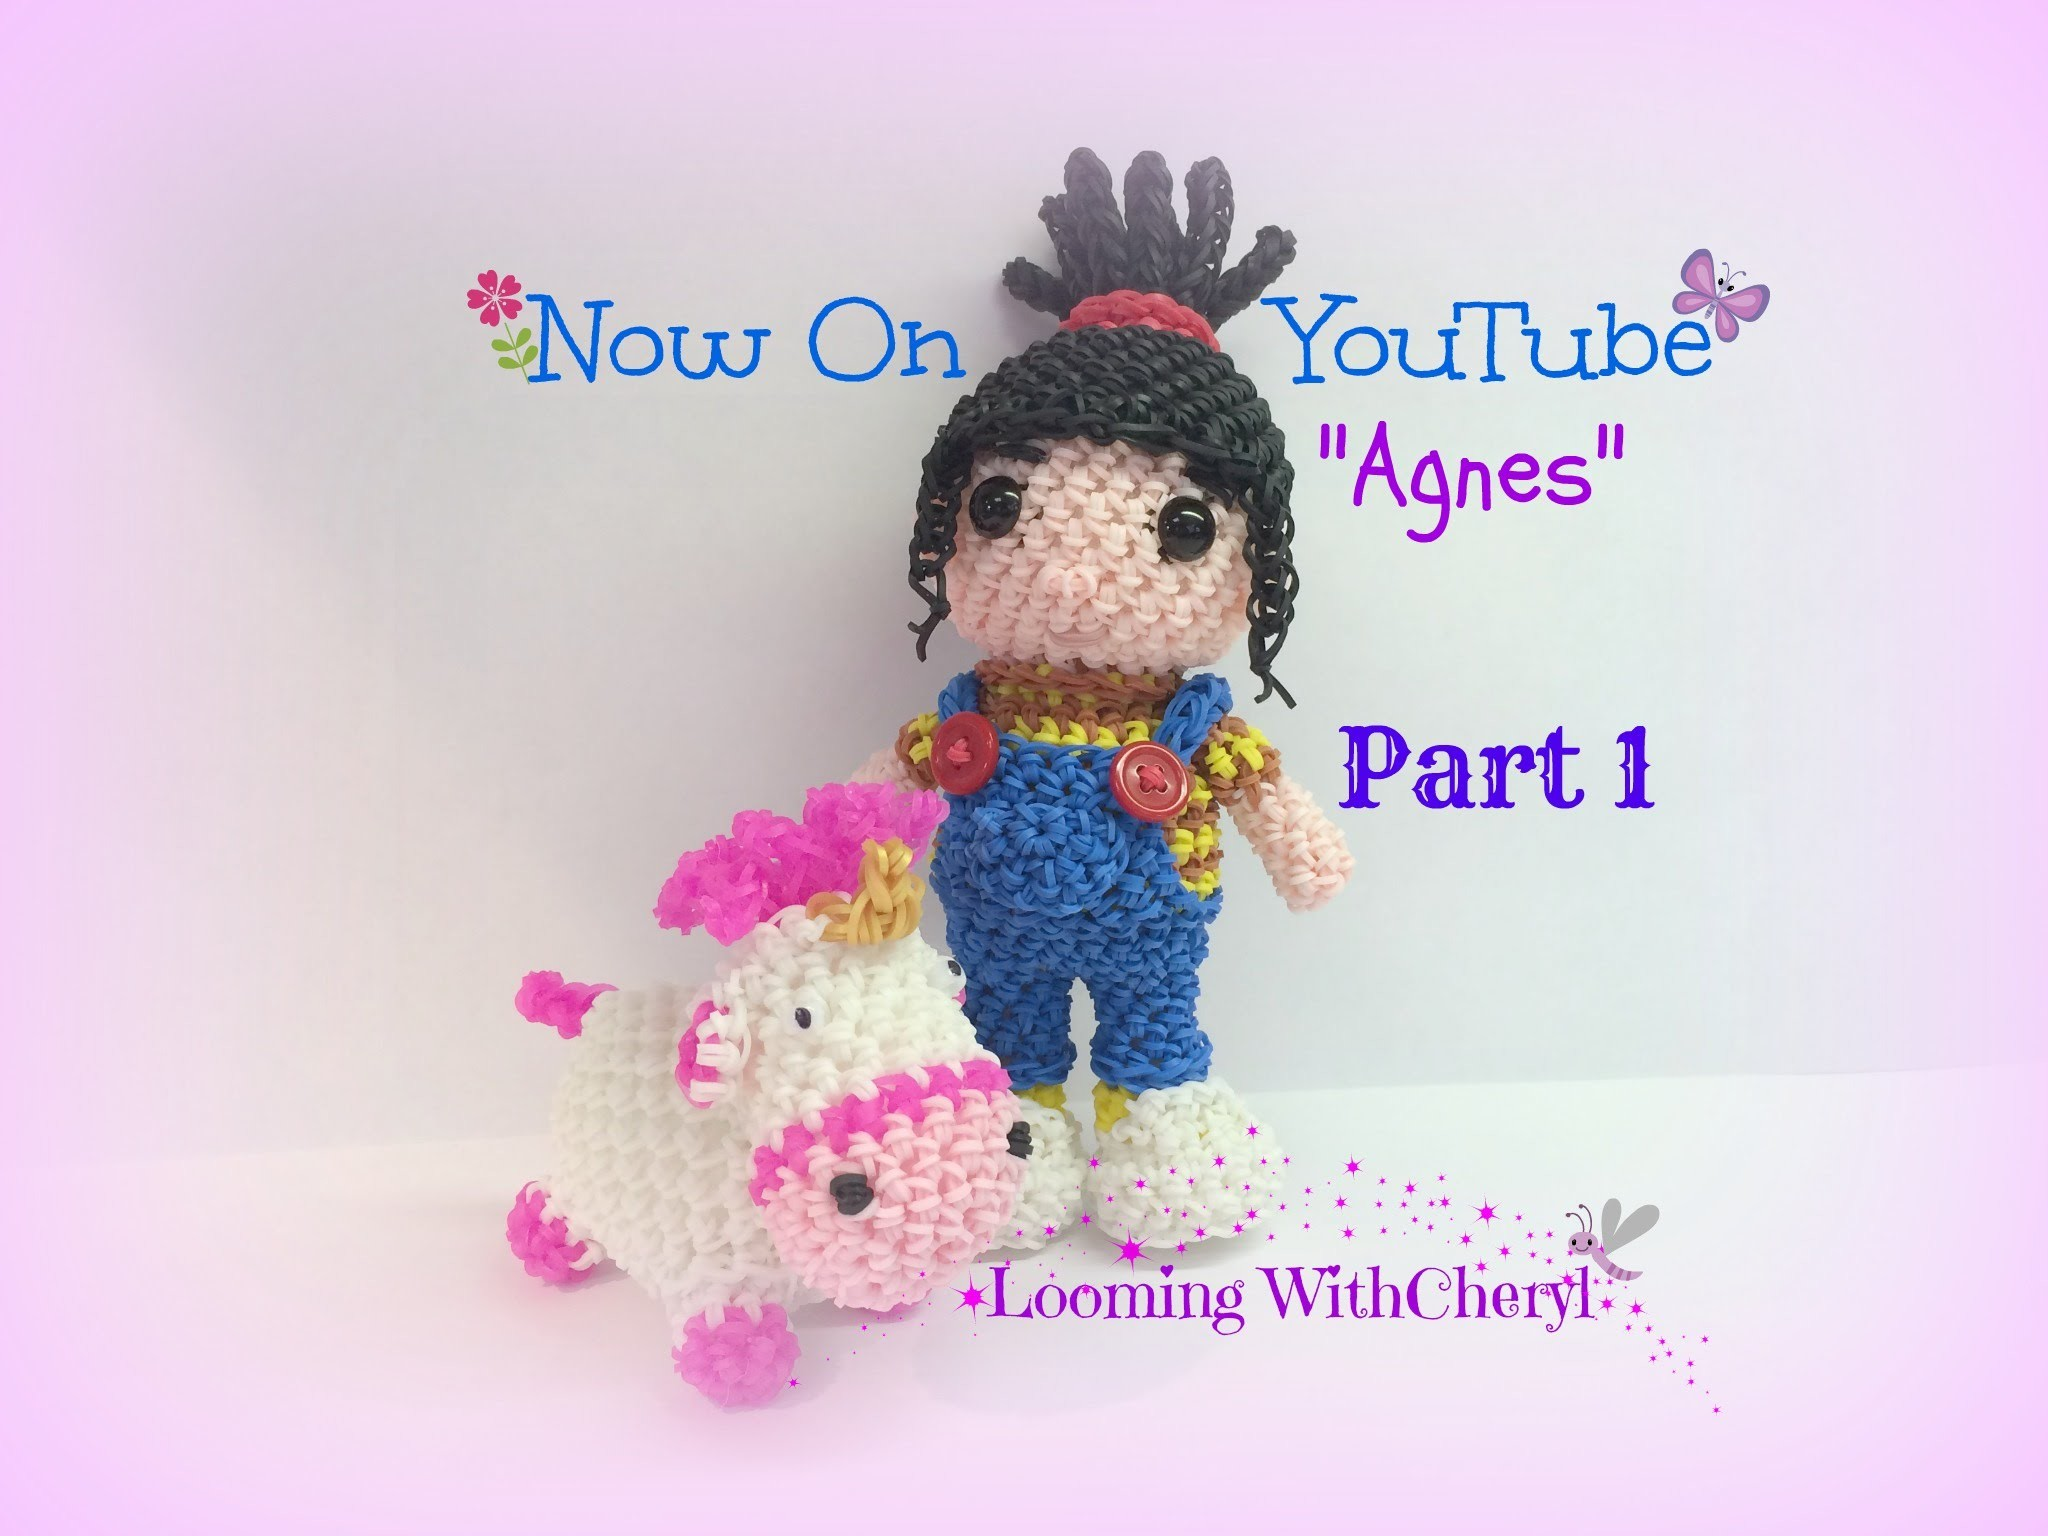 Rainbow Loom Agnes Doll Part 1 of 2 - Loomigurumi. Amigurumi Hook Only